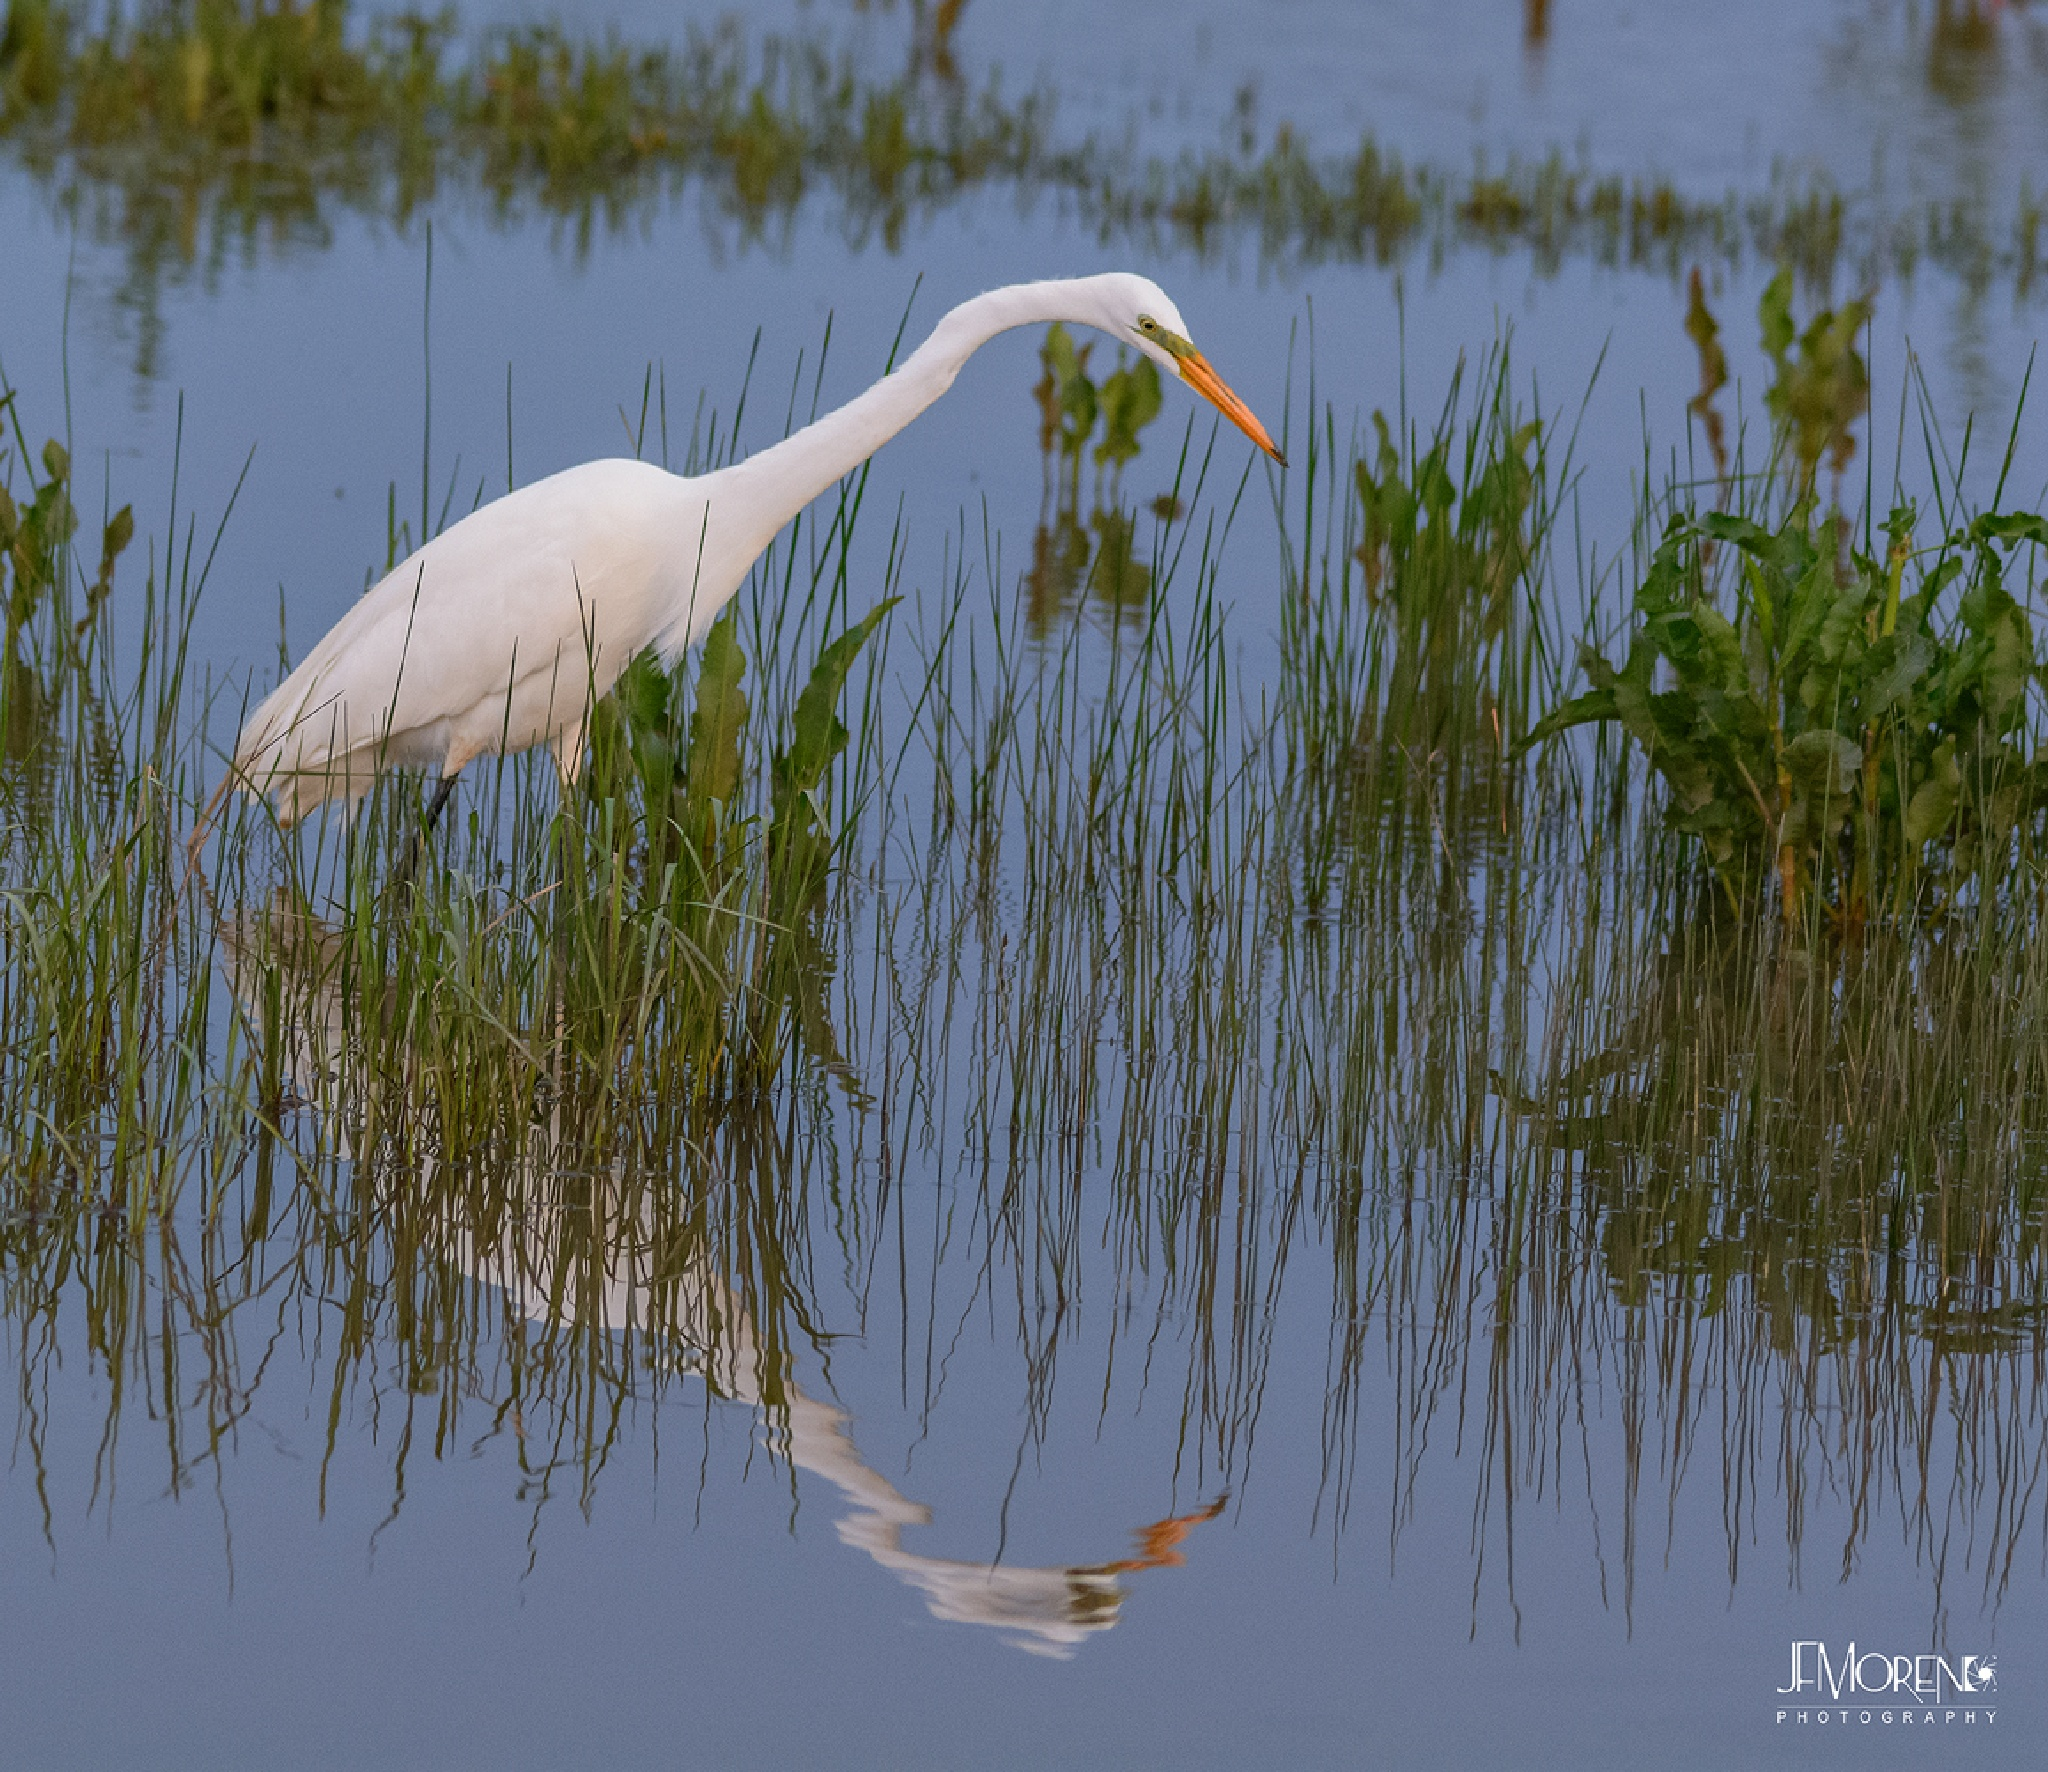 Mirror mirror on the...pond? by Jesus Moreno